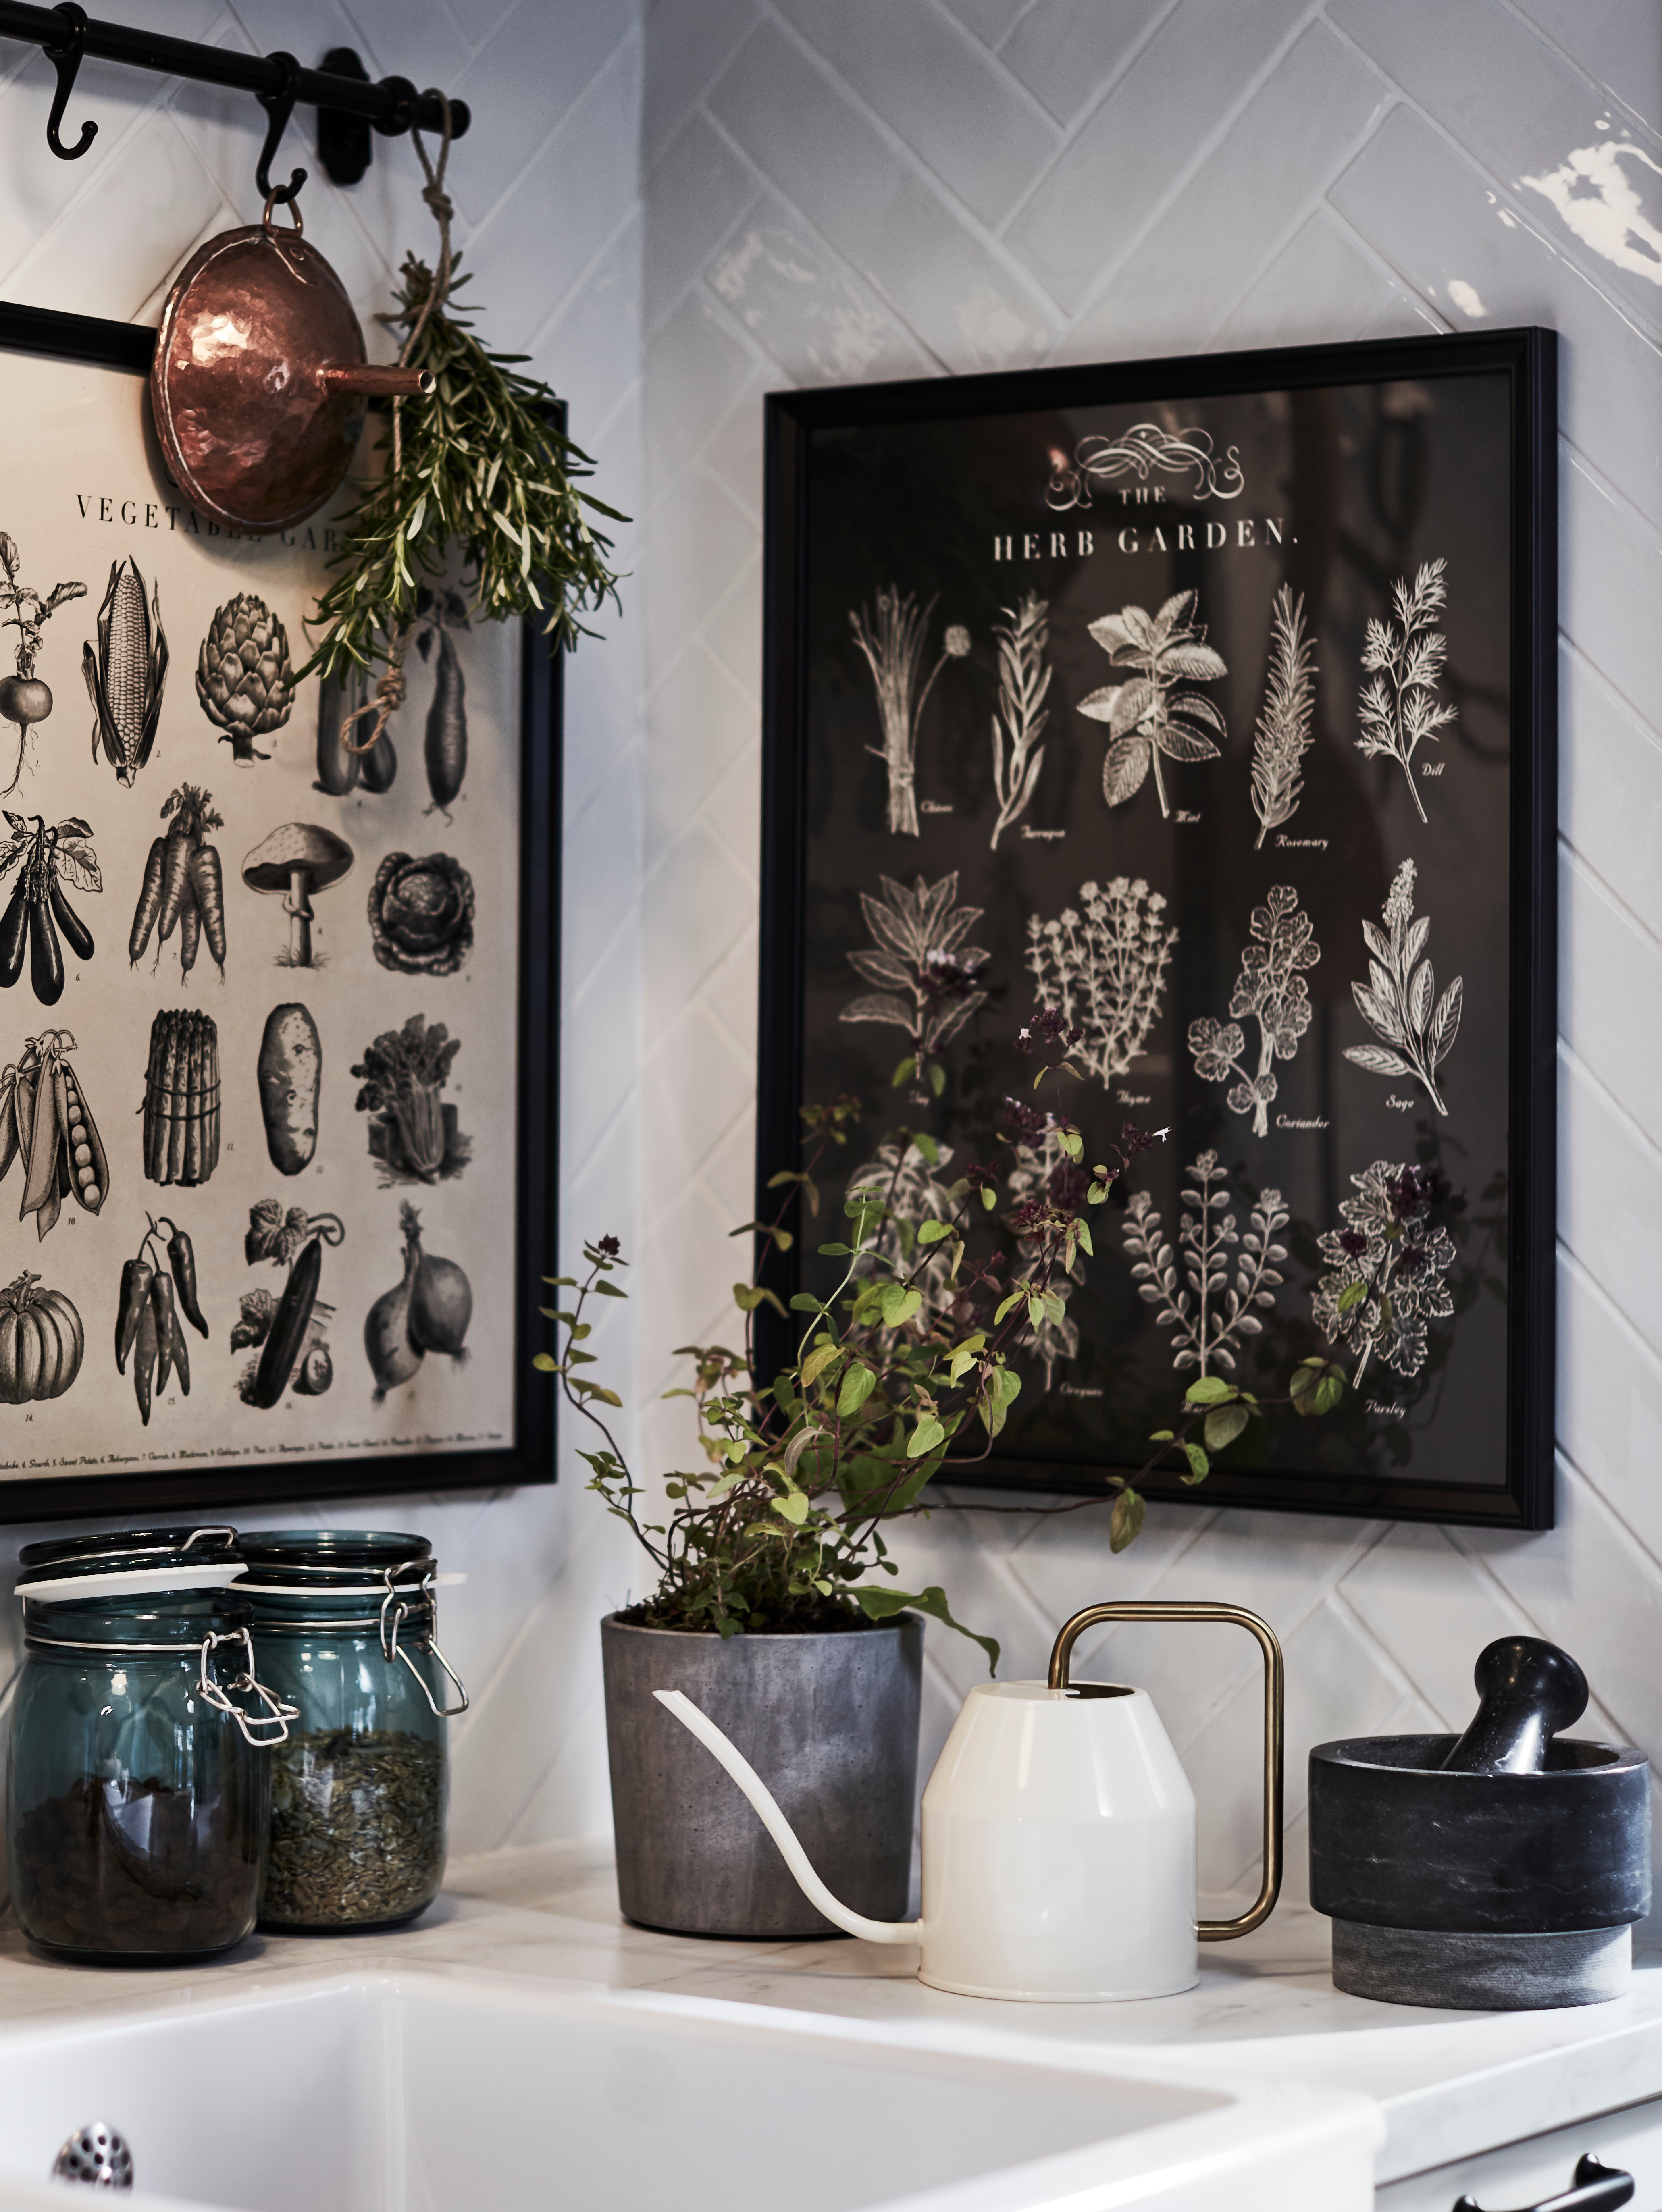 A kitchen sink has garden-themed KNOPPÄNG frames with posters on the walls above by a potted herb and a watering can.